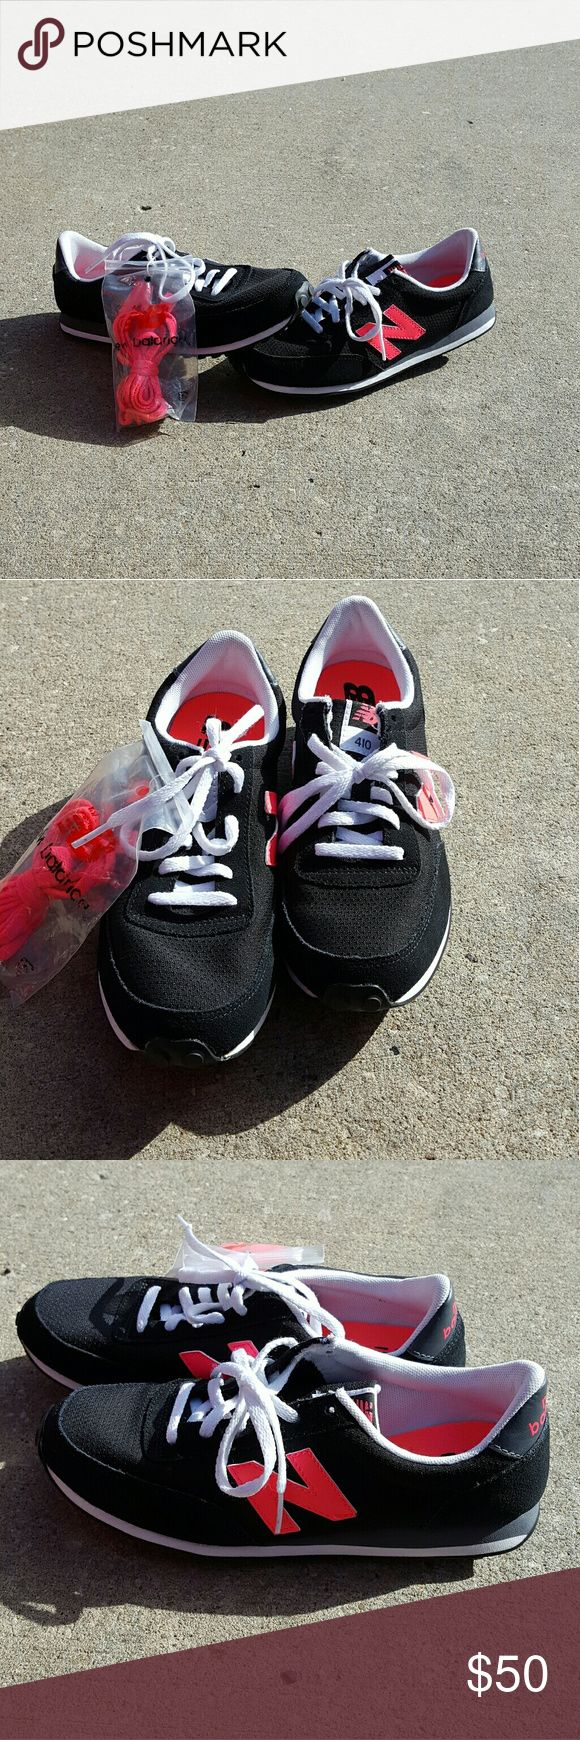 Nwob New Balance black and pink sneakers New without box Never worn Size 7 Comes with extra laces No Trades New Balance Shoes Athletic Shoes